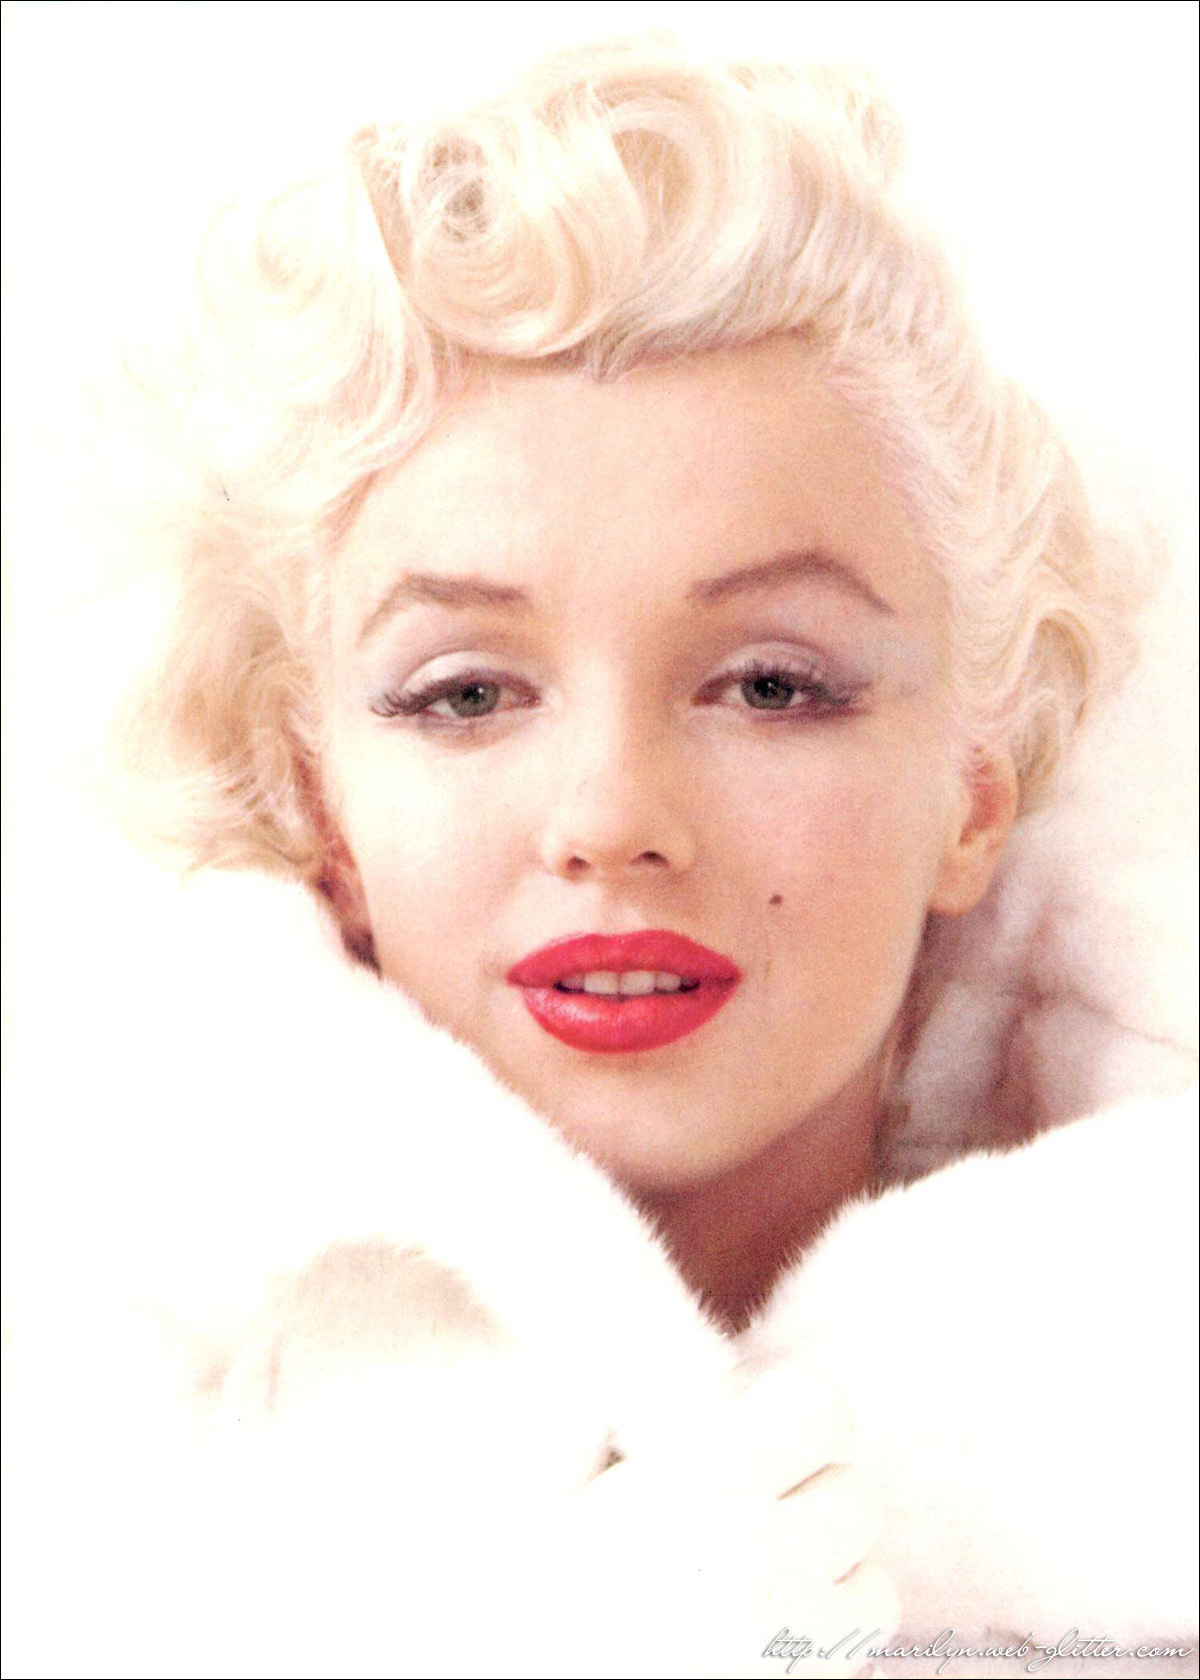 Marilyn Monroe - Marilyn Monroe Photo (12892550) - Fanpop